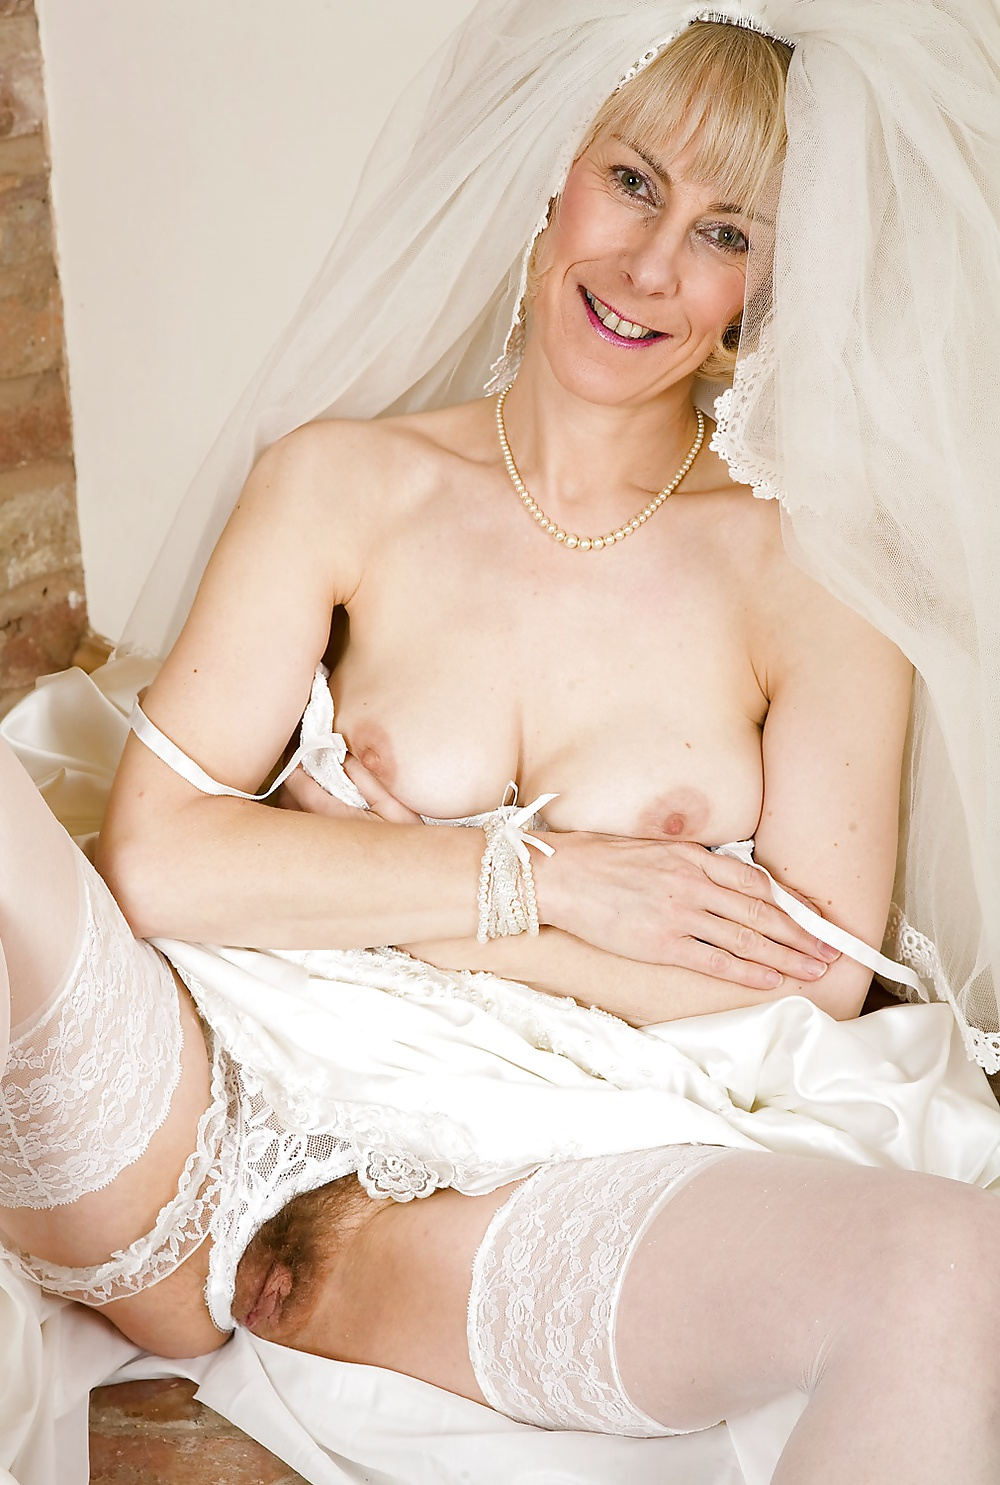 Sexy naked bride hairy pussy shower video dick